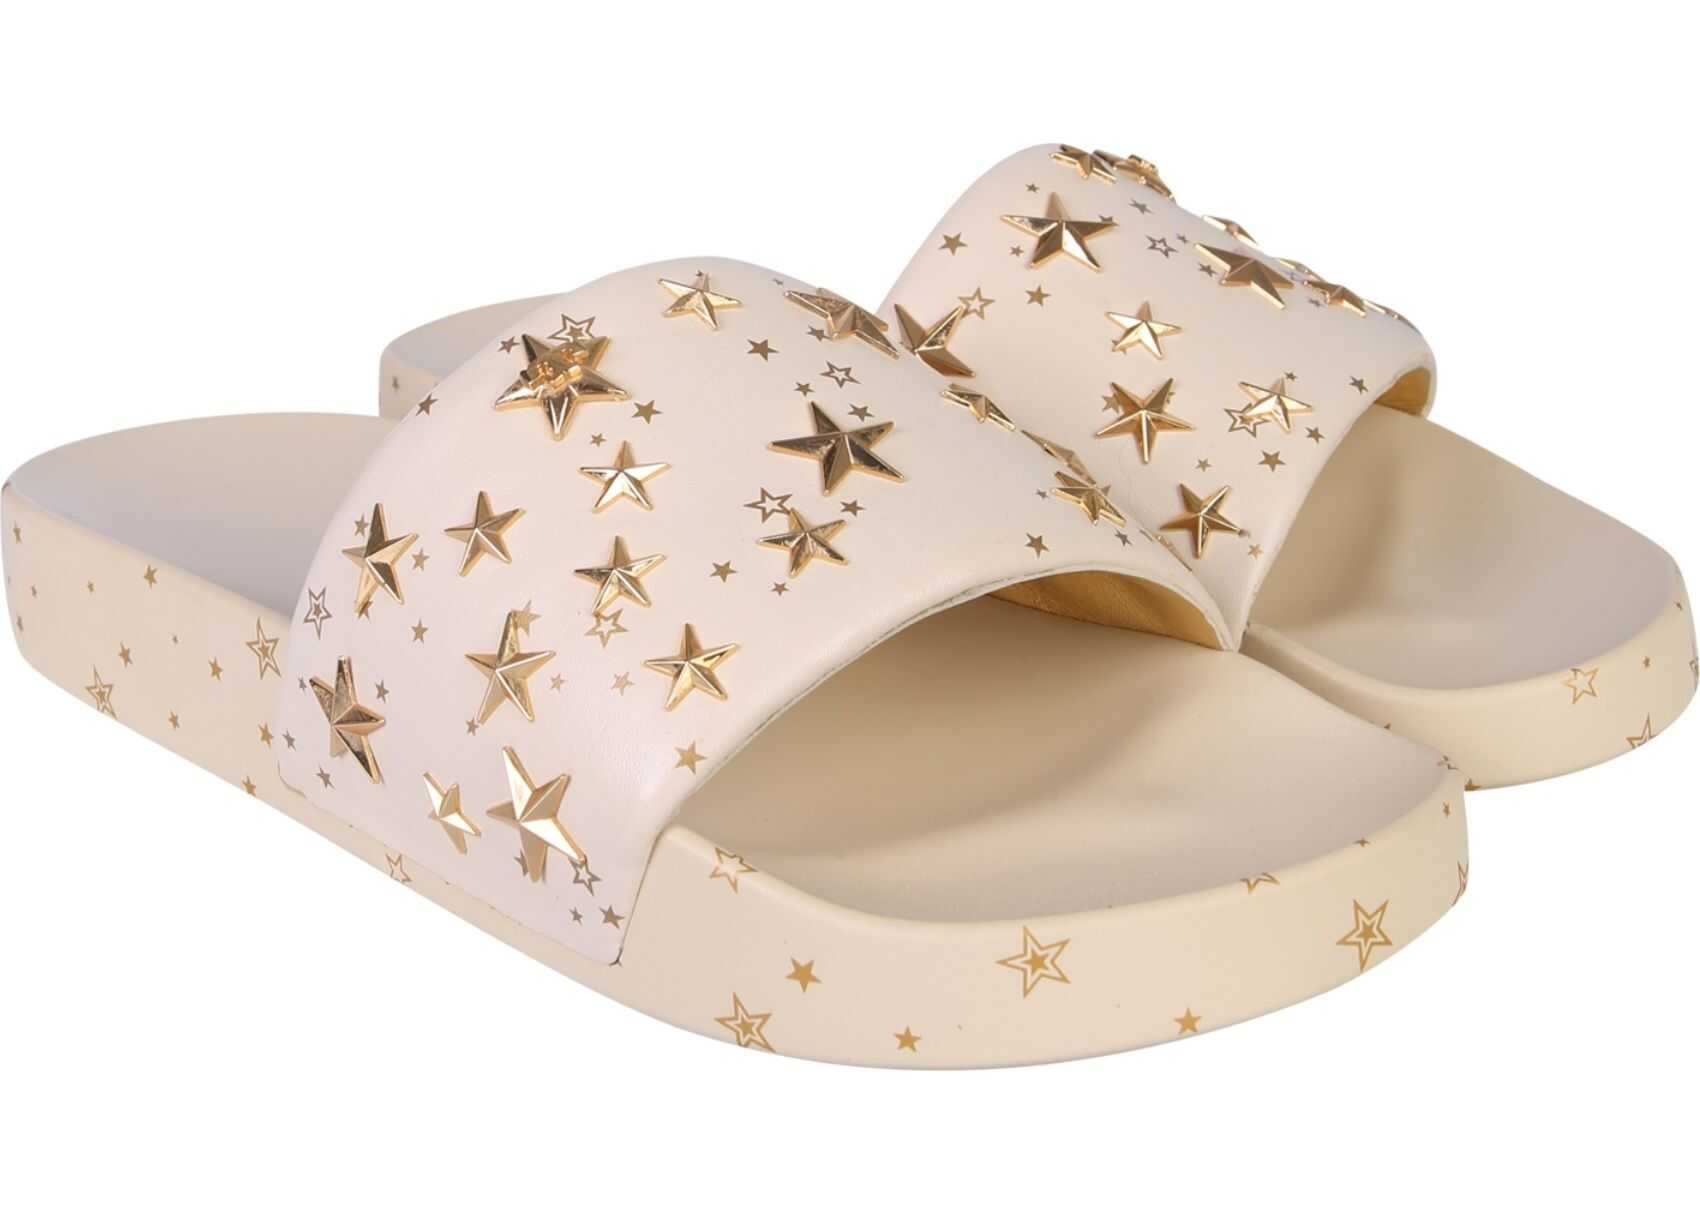 Tory Burch Slide Sandals With Stars BEIGE